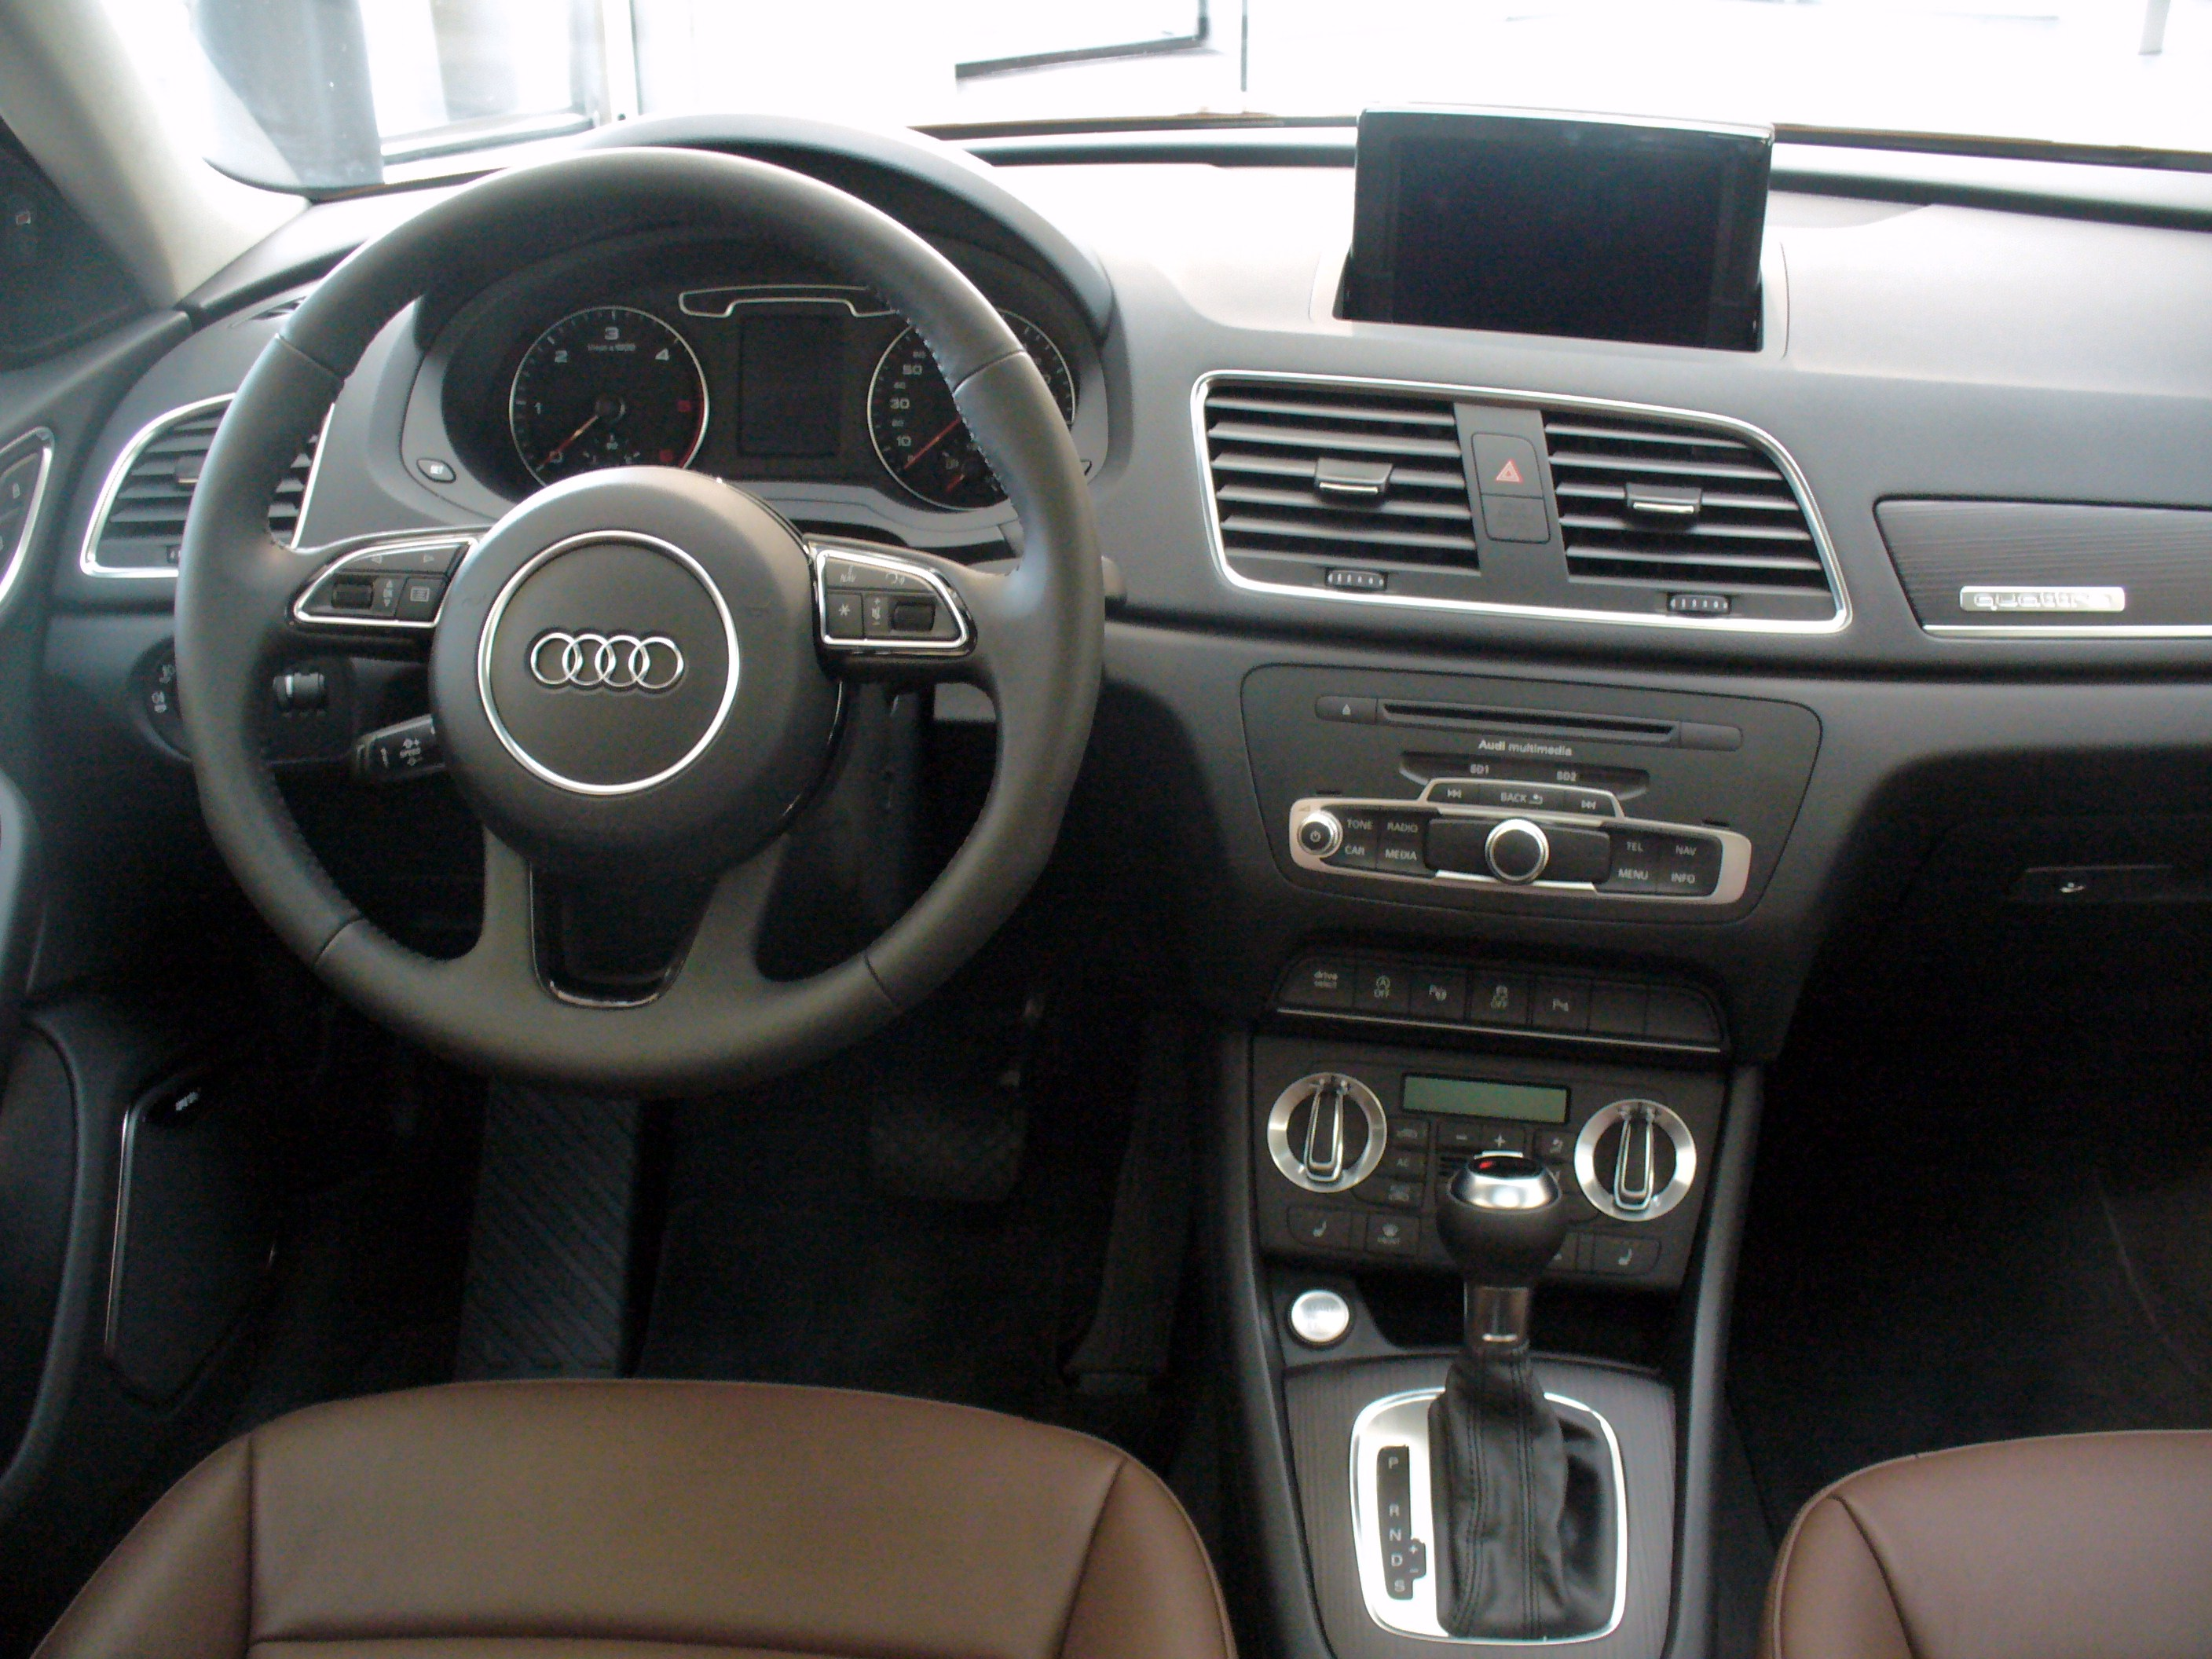 archivo audi q3 2 0 tdi quattro s tronic samoaorange interieur jpg wikipedia la enciclopedia. Black Bedroom Furniture Sets. Home Design Ideas